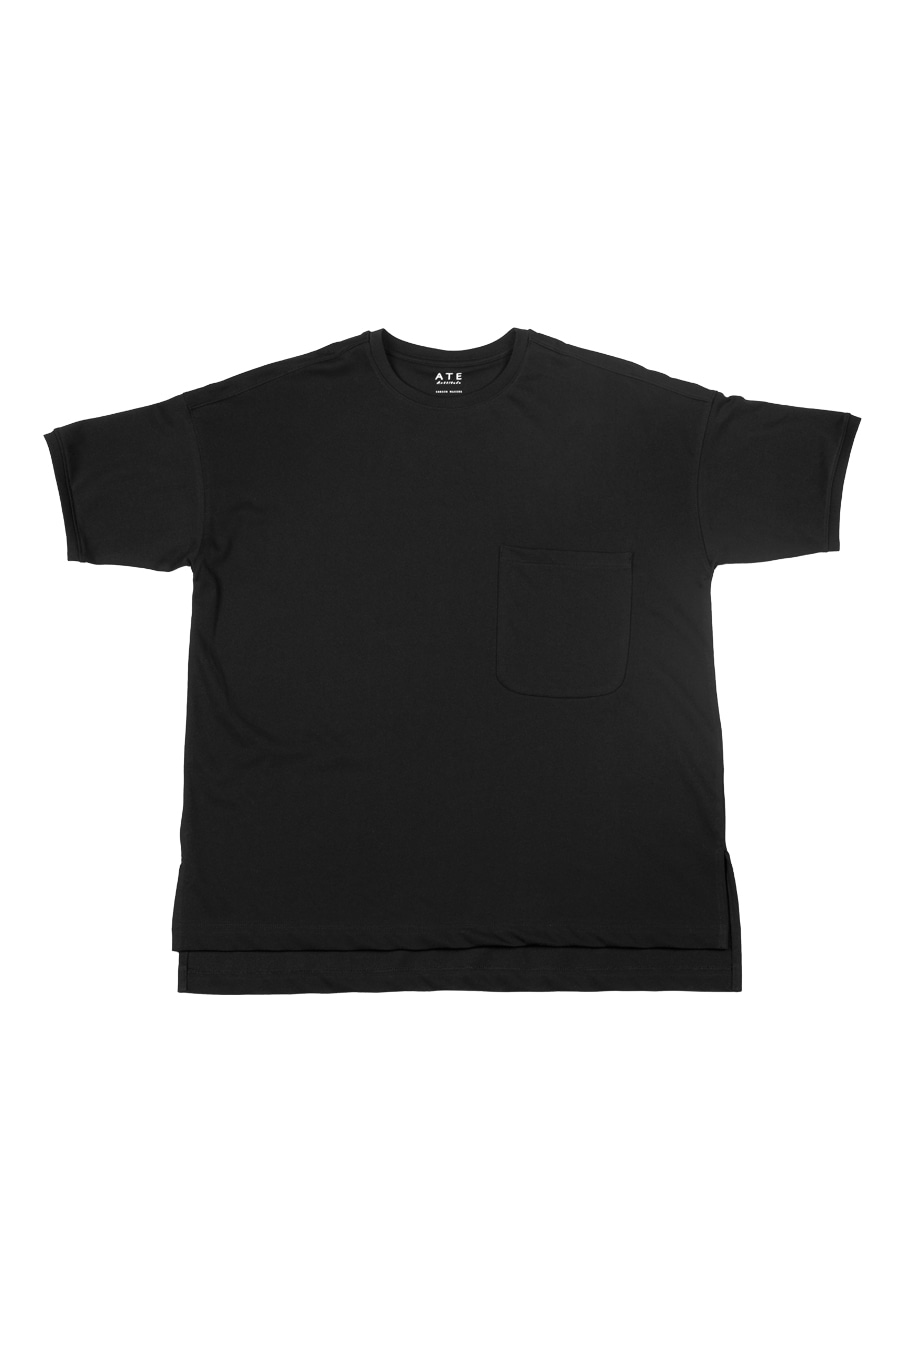 Sleek-Slack Half Tee / BlackArttitude(아티튜드)